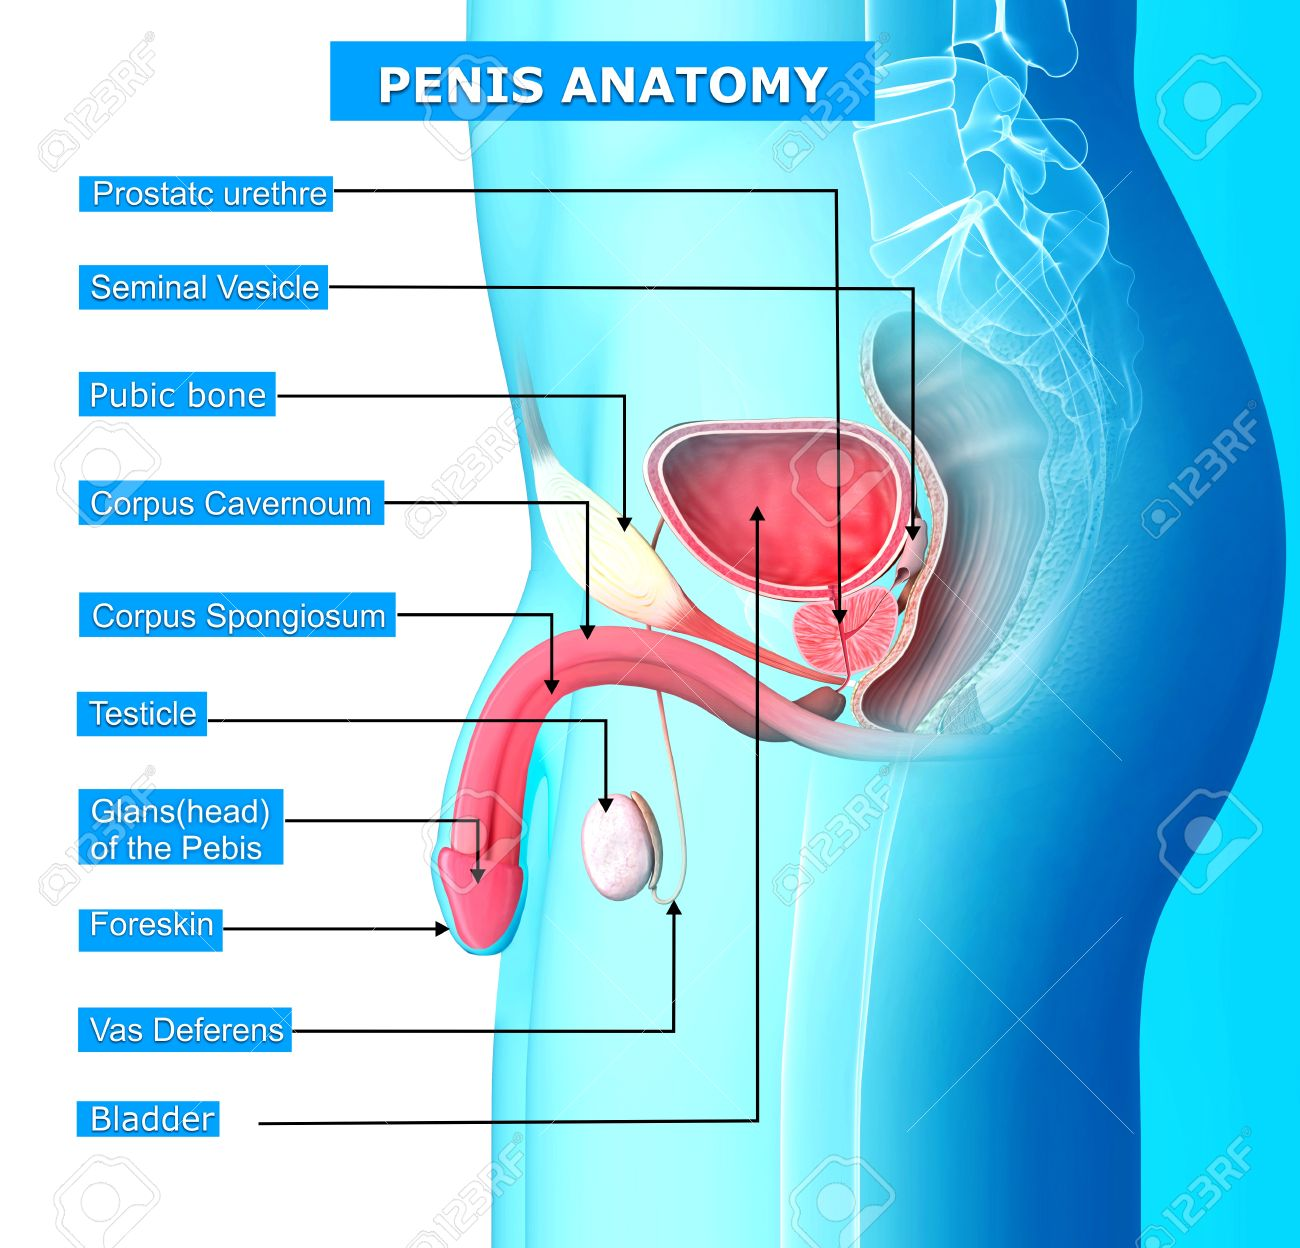 Anatomy Of Reproductive System Of Male With Names Stock Photo